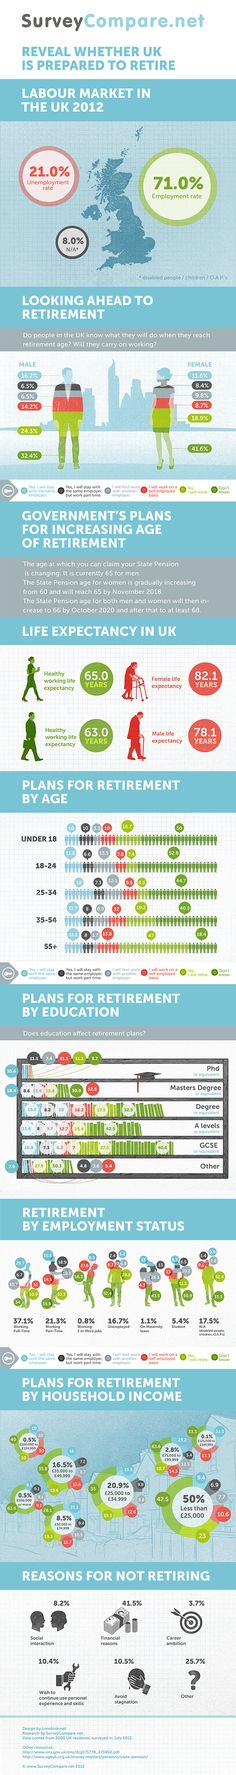 UK Retirement Decisions Infographic